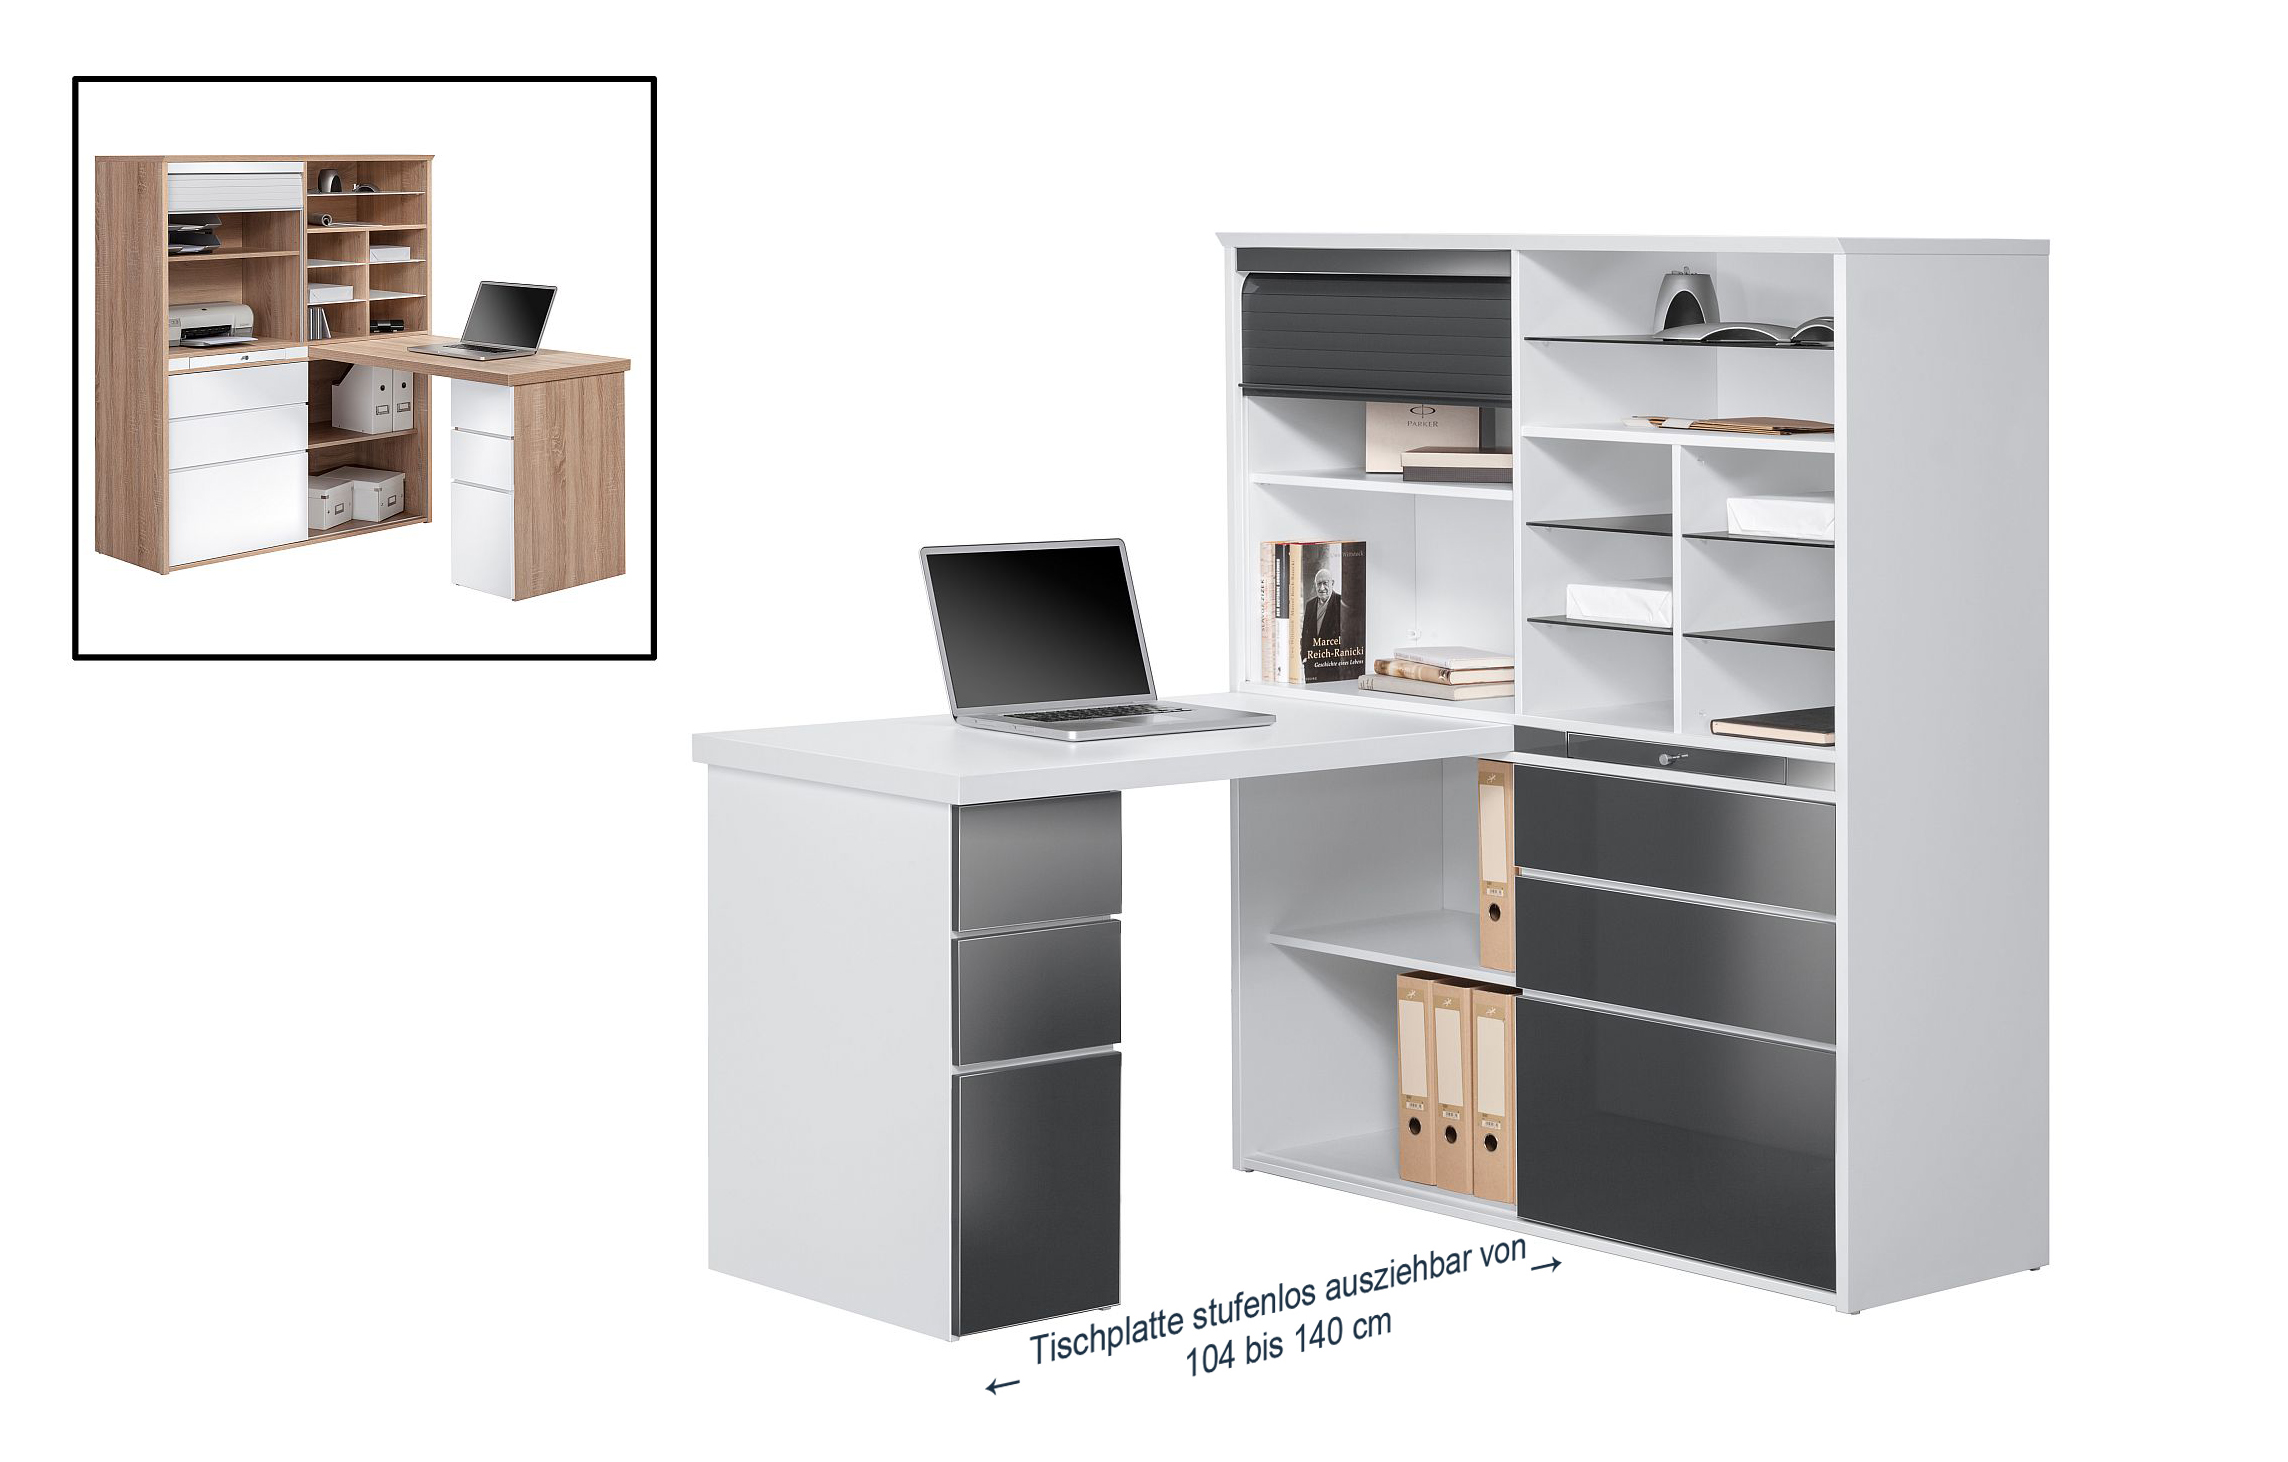 minioffice maja 9565 icy wei grau hochglanz. Black Bedroom Furniture Sets. Home Design Ideas